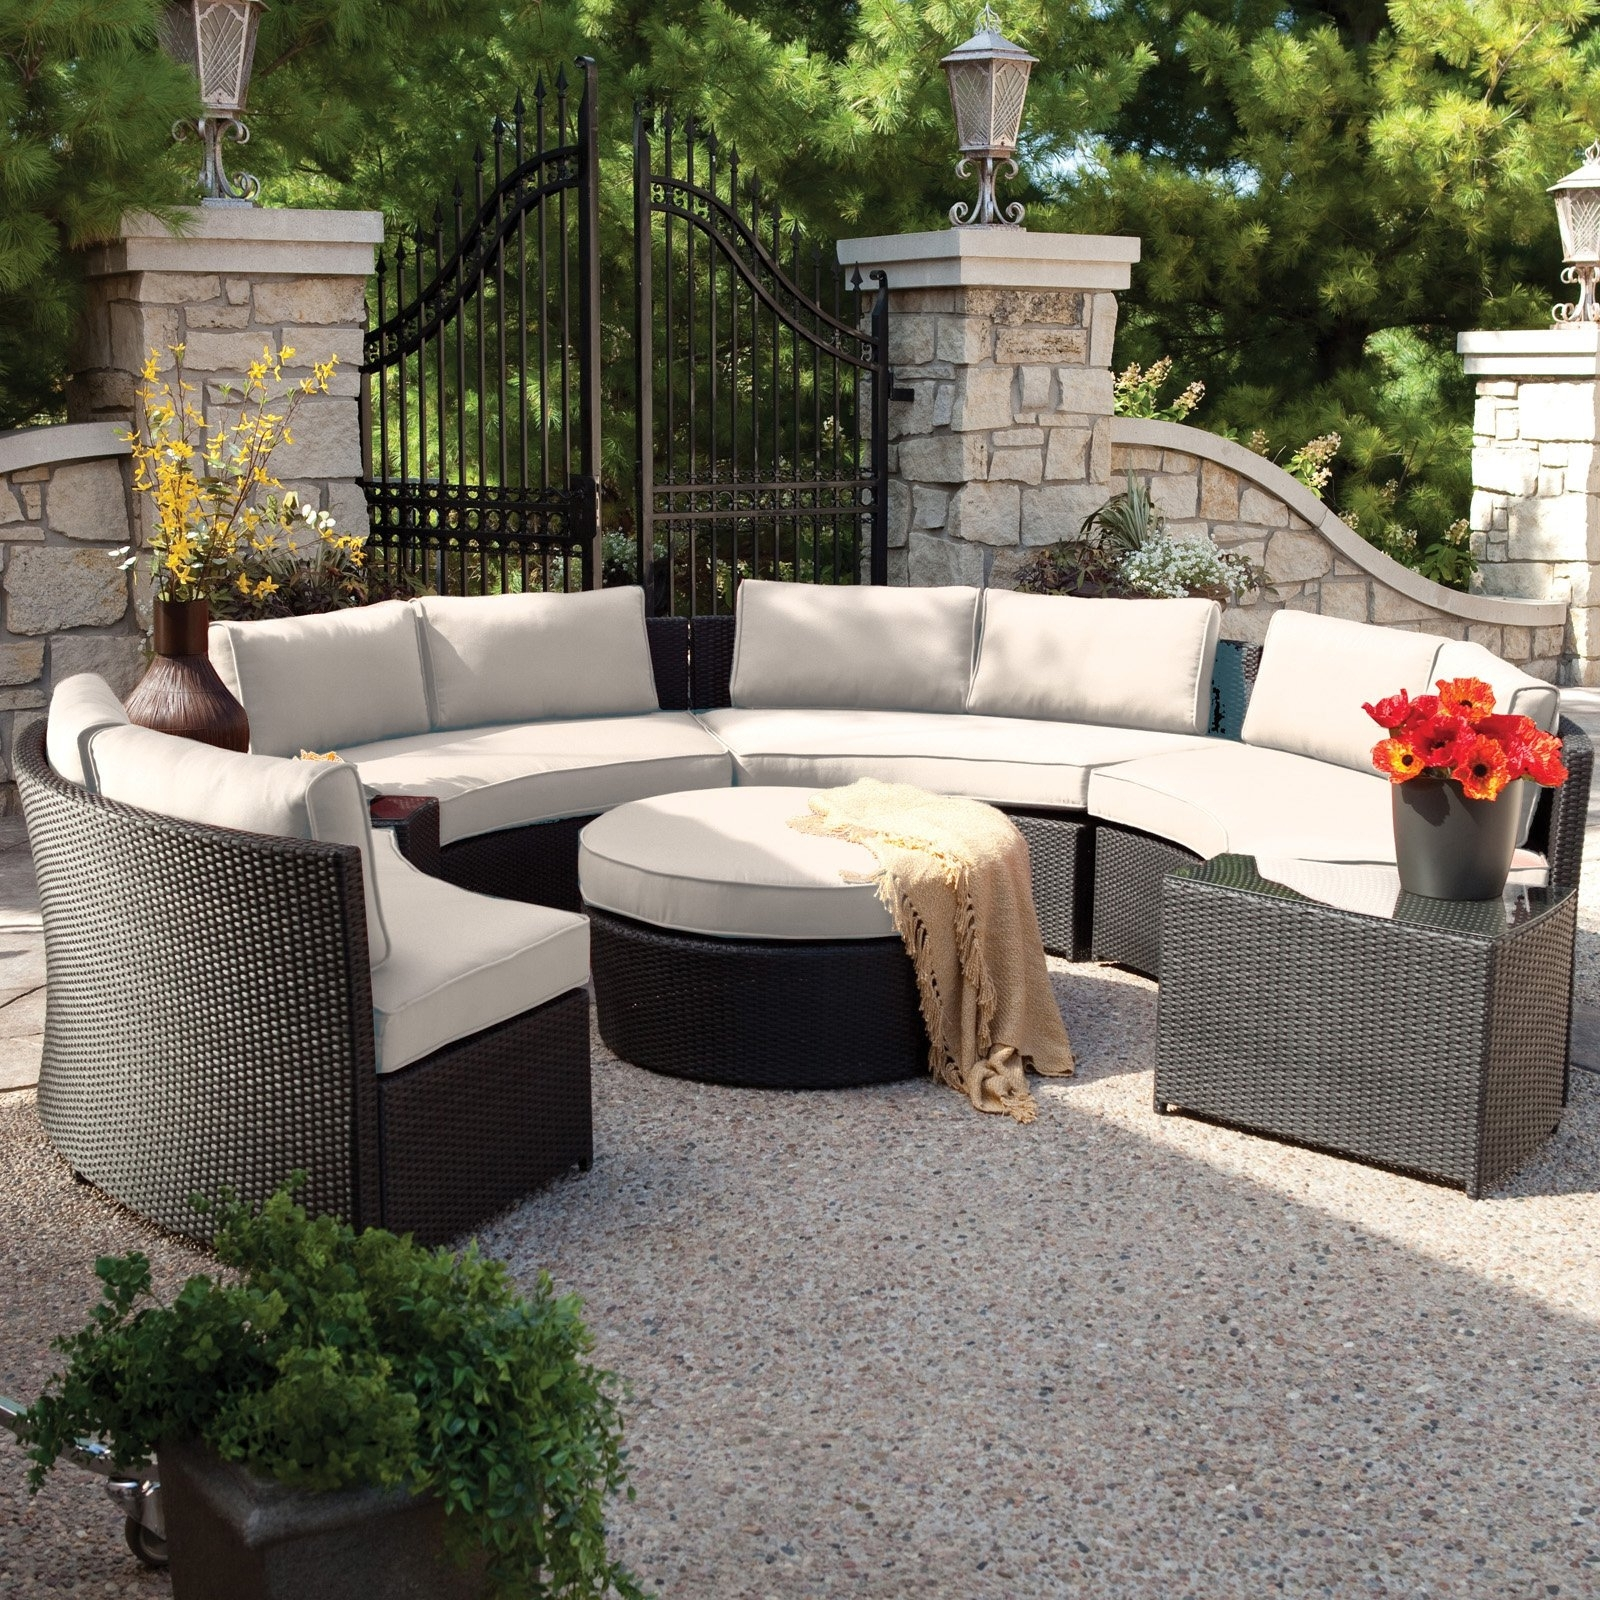 Well Known Belham Living Meridian Round Outdoor Wicker Patio Furniture Set With  Sunbrella Cushions Regarding Patio Conversation Sets With Cushions (View 20 of 20)